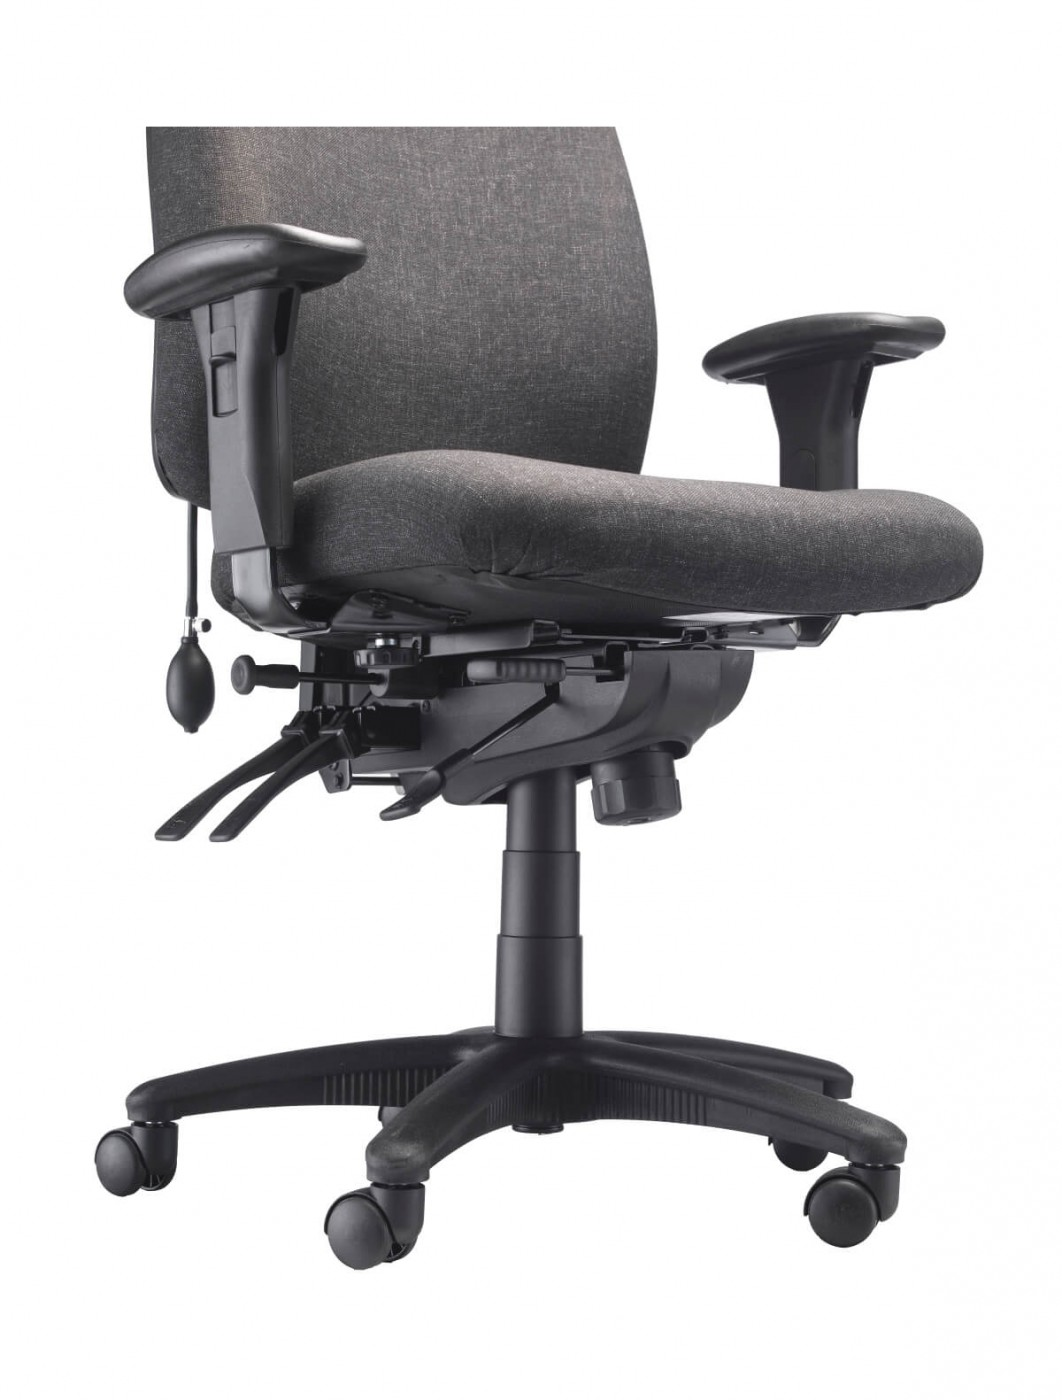 Cloth Covered Office Chairs Office Chairs Vista Fabric Office Chair Ch0903ch 121